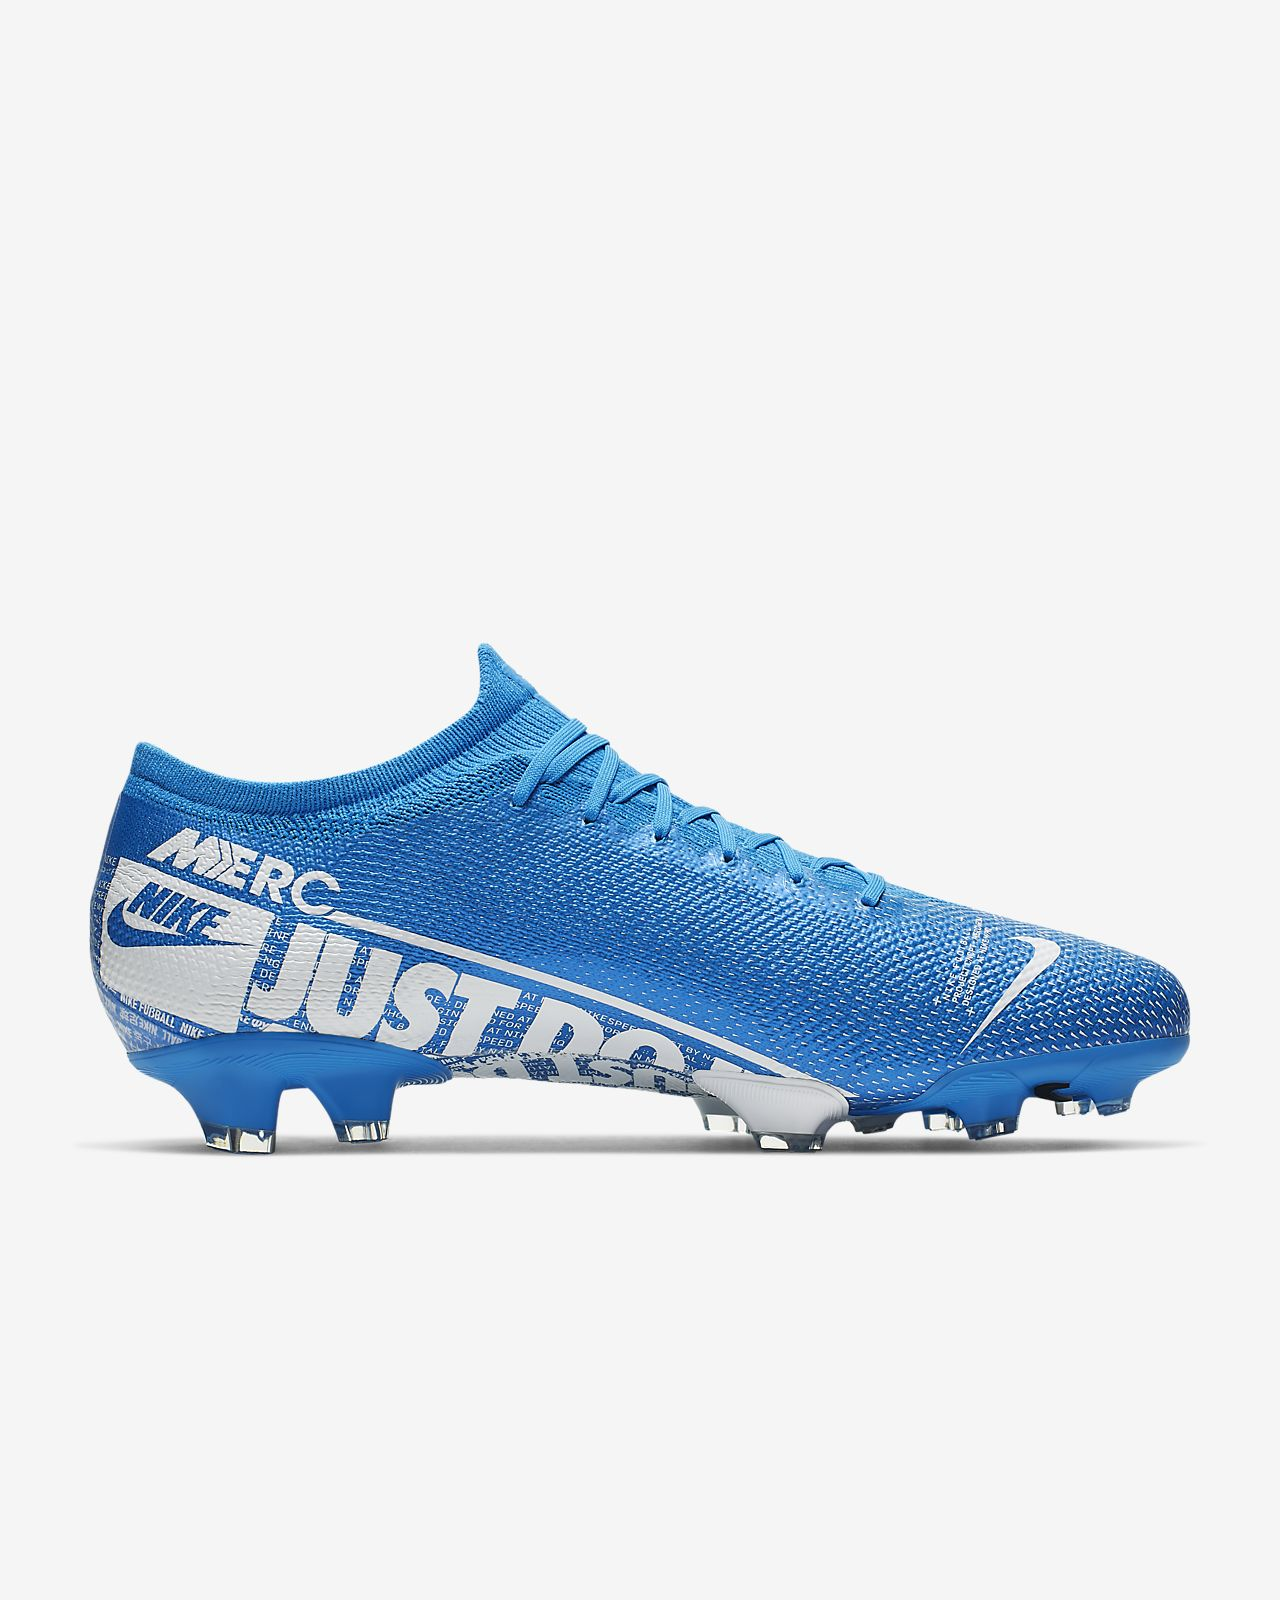 Nike Mercurial Vapor 13 Pro FG Firm Ground Soccer Cleat